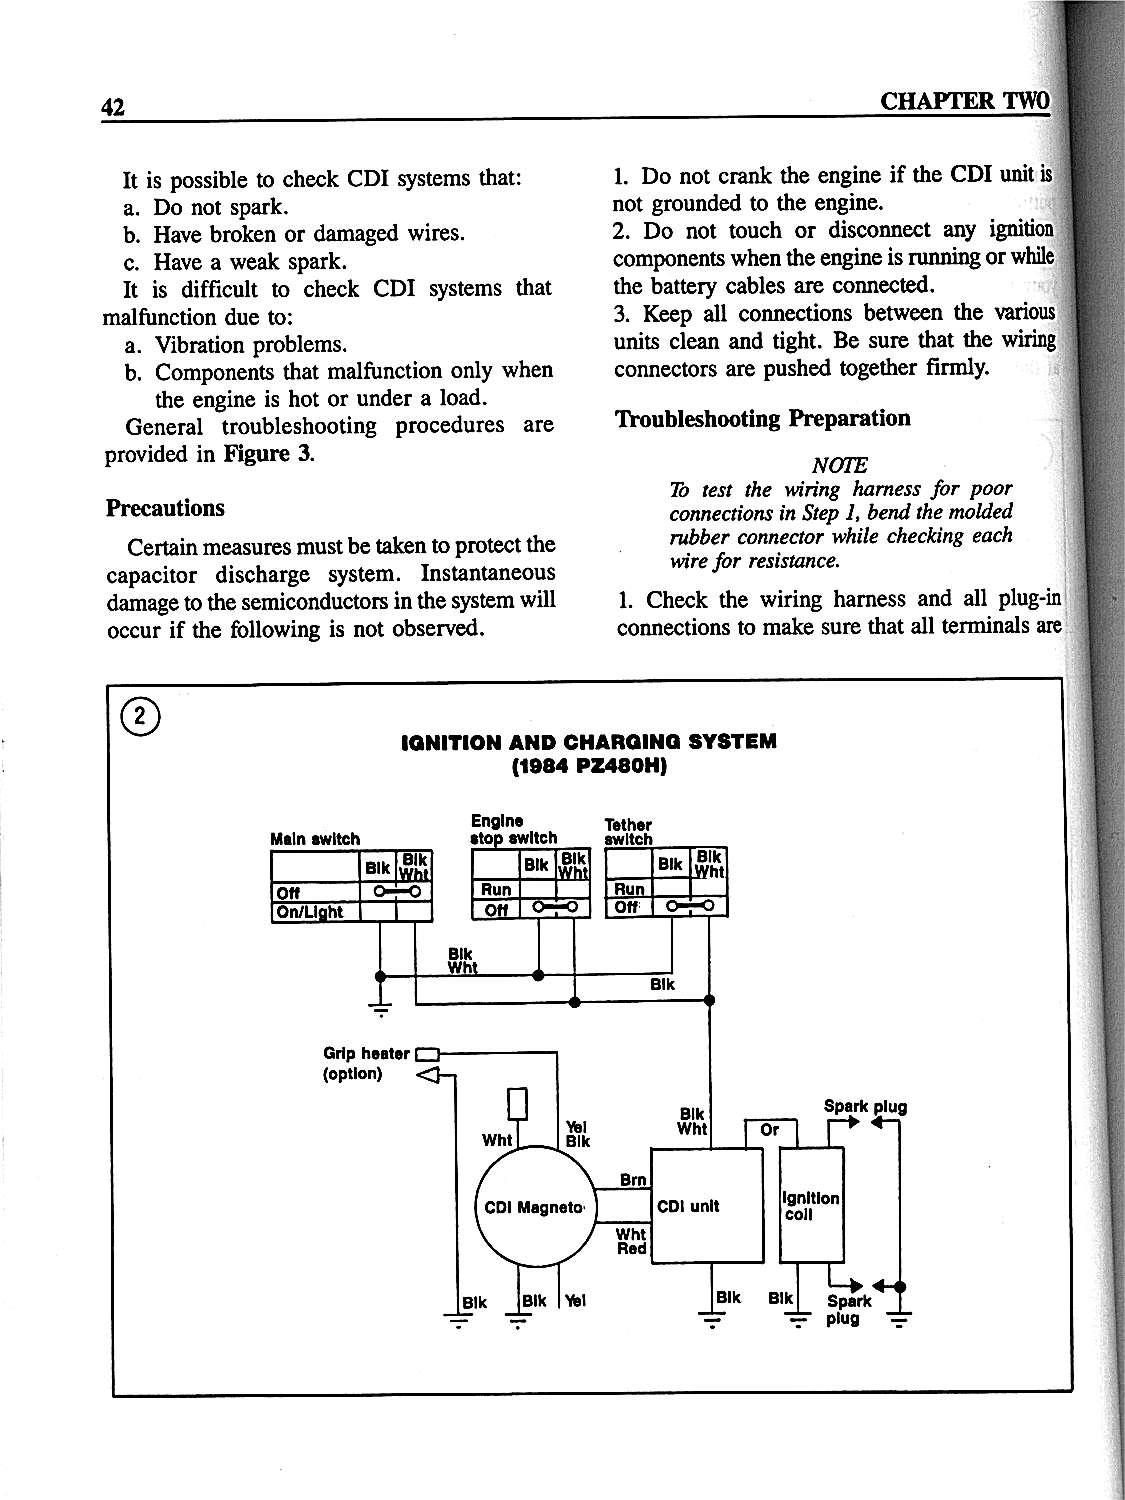 yamaha phazer 2 wiring diagram - wiring diagram and schematic ezgo pds stock controller wiring diagram image for golf #12